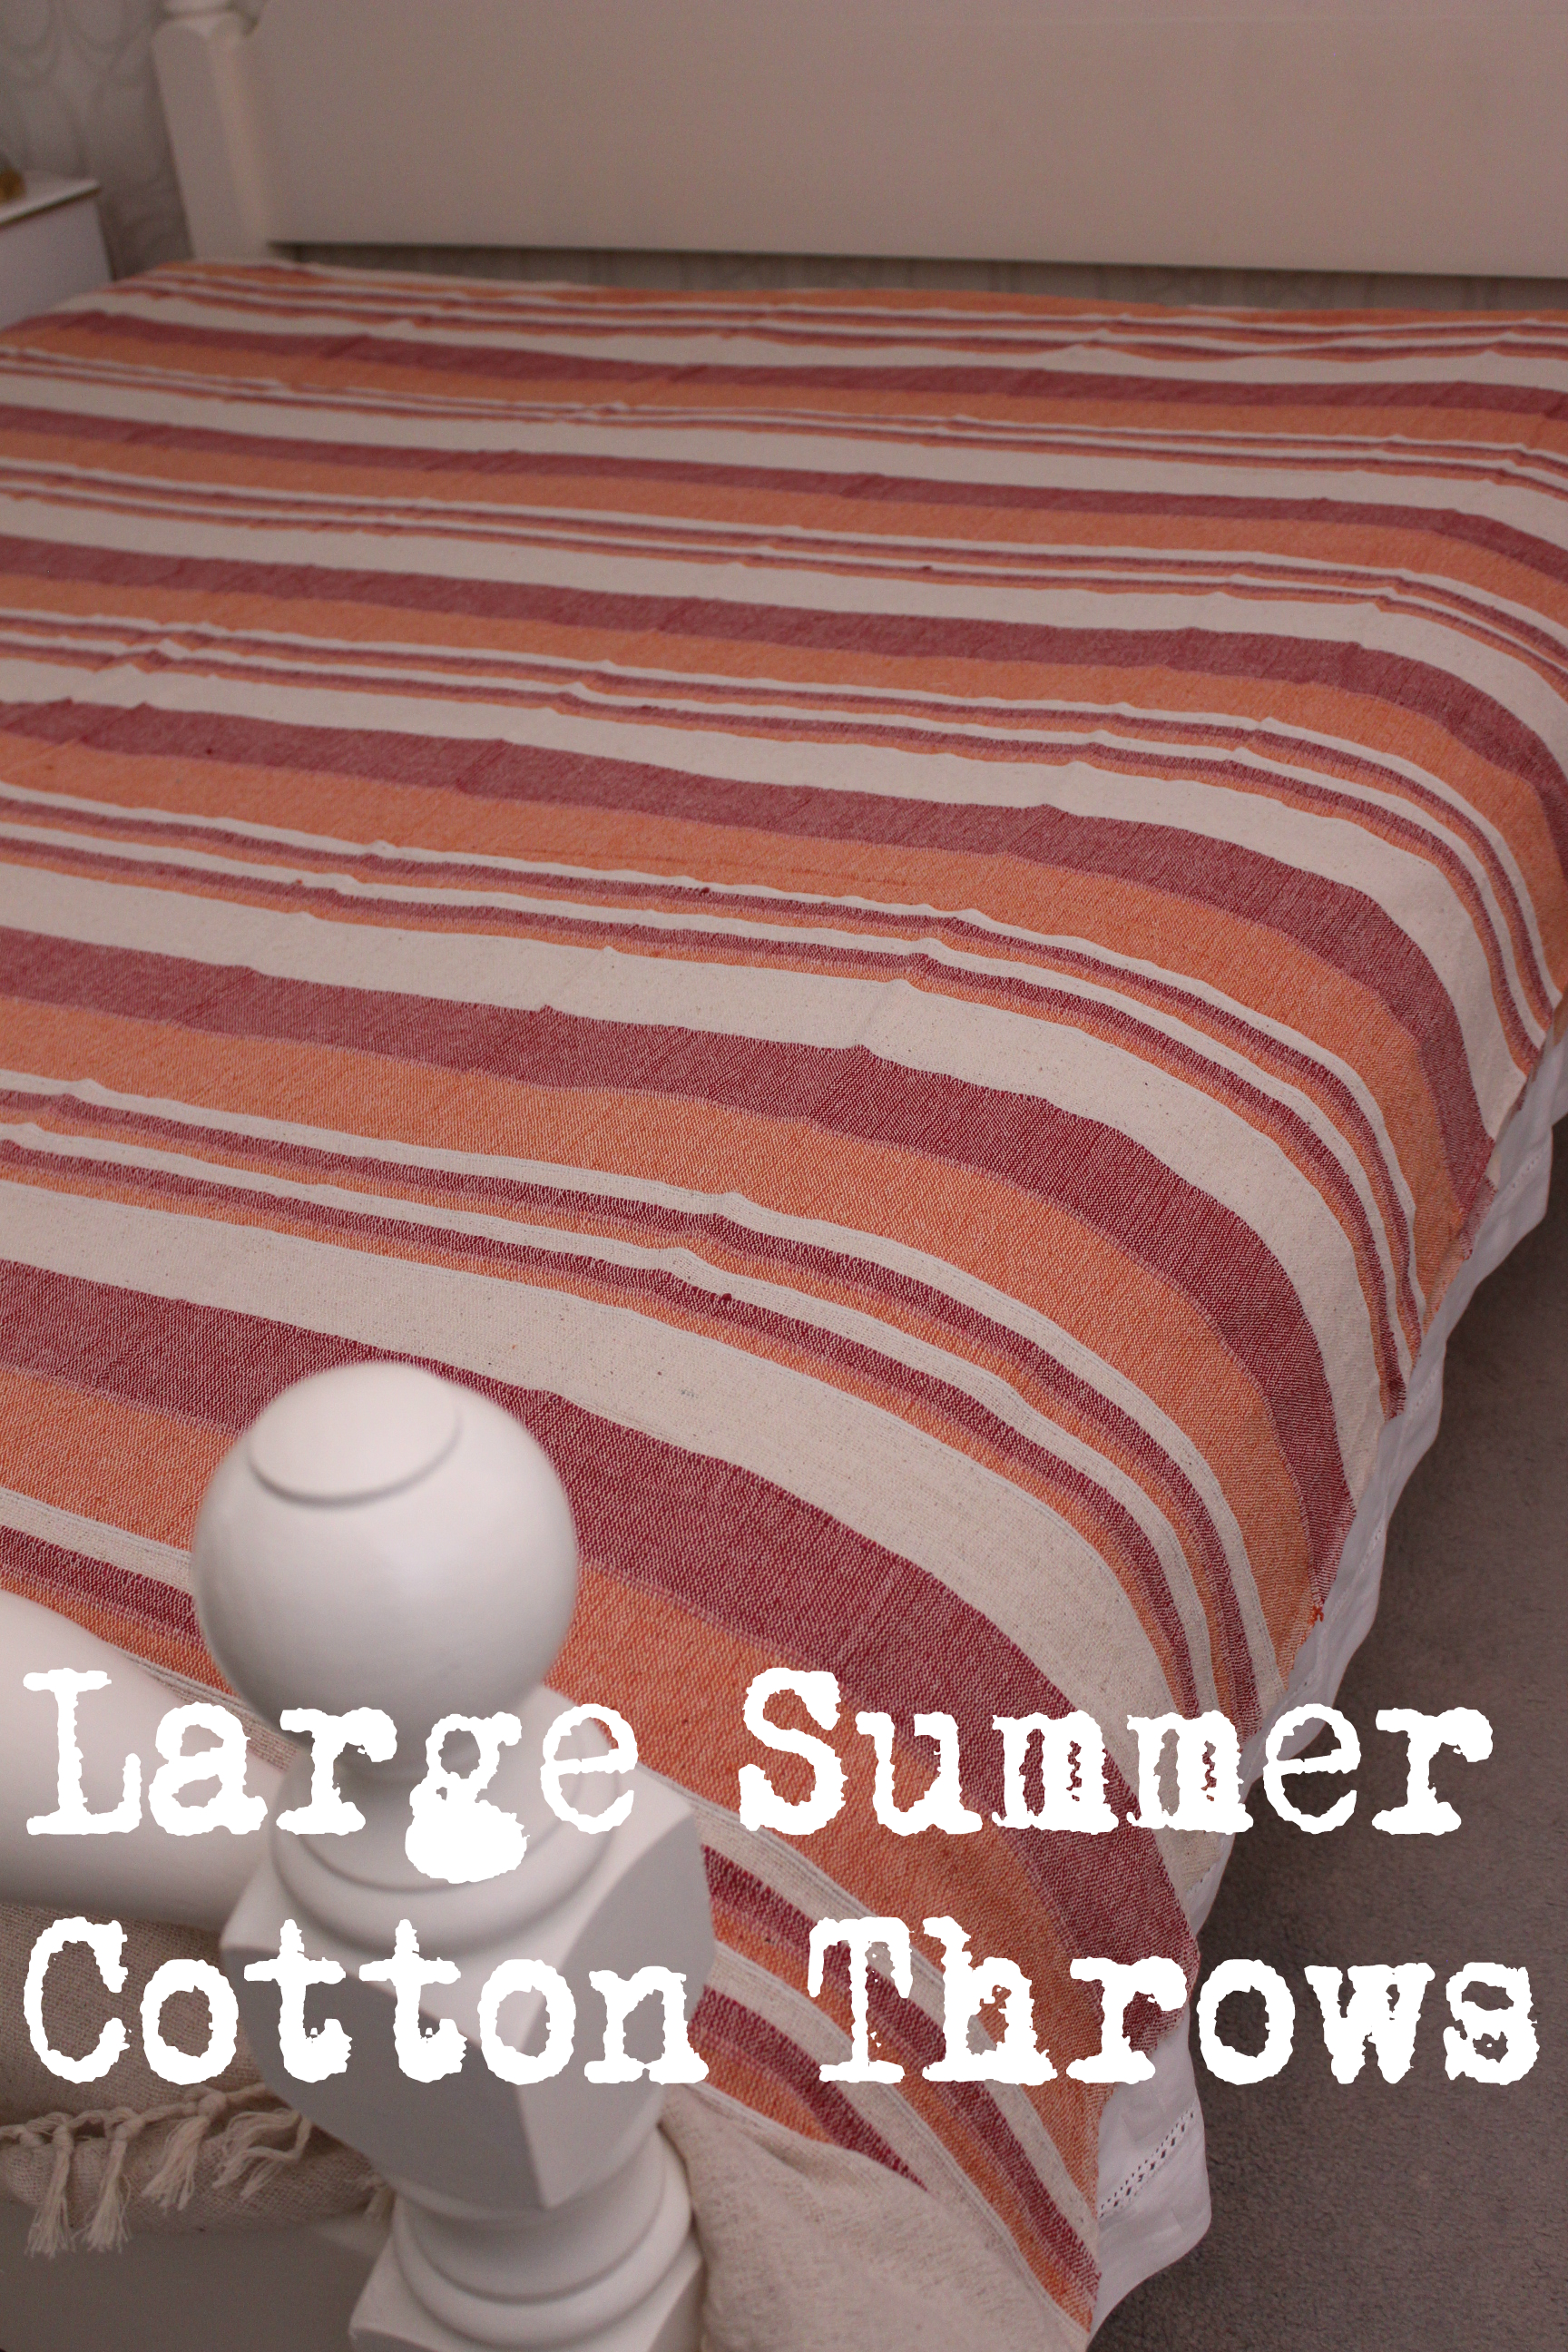 Cotton King Throw Bed Cover Orange Blue Aqua Pink Beige